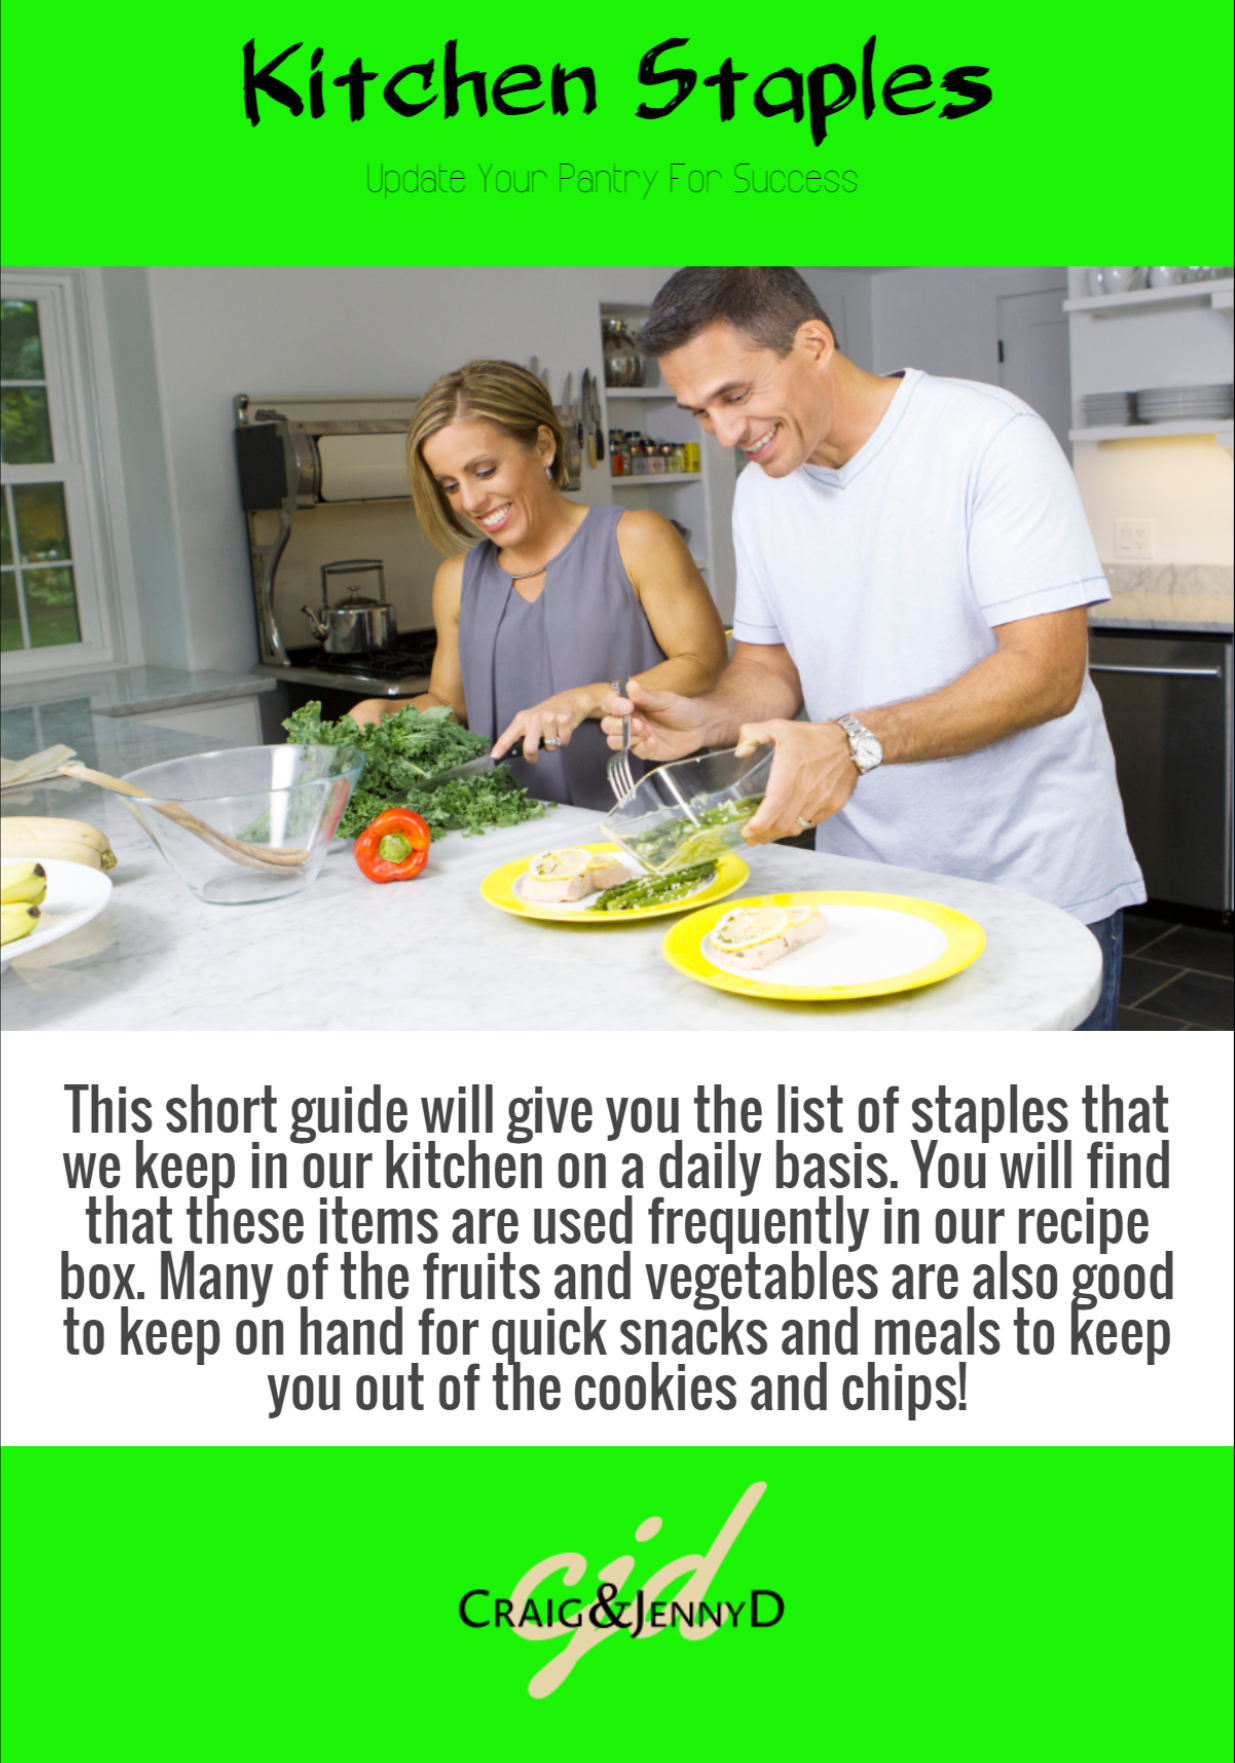 kitchen_staples_1